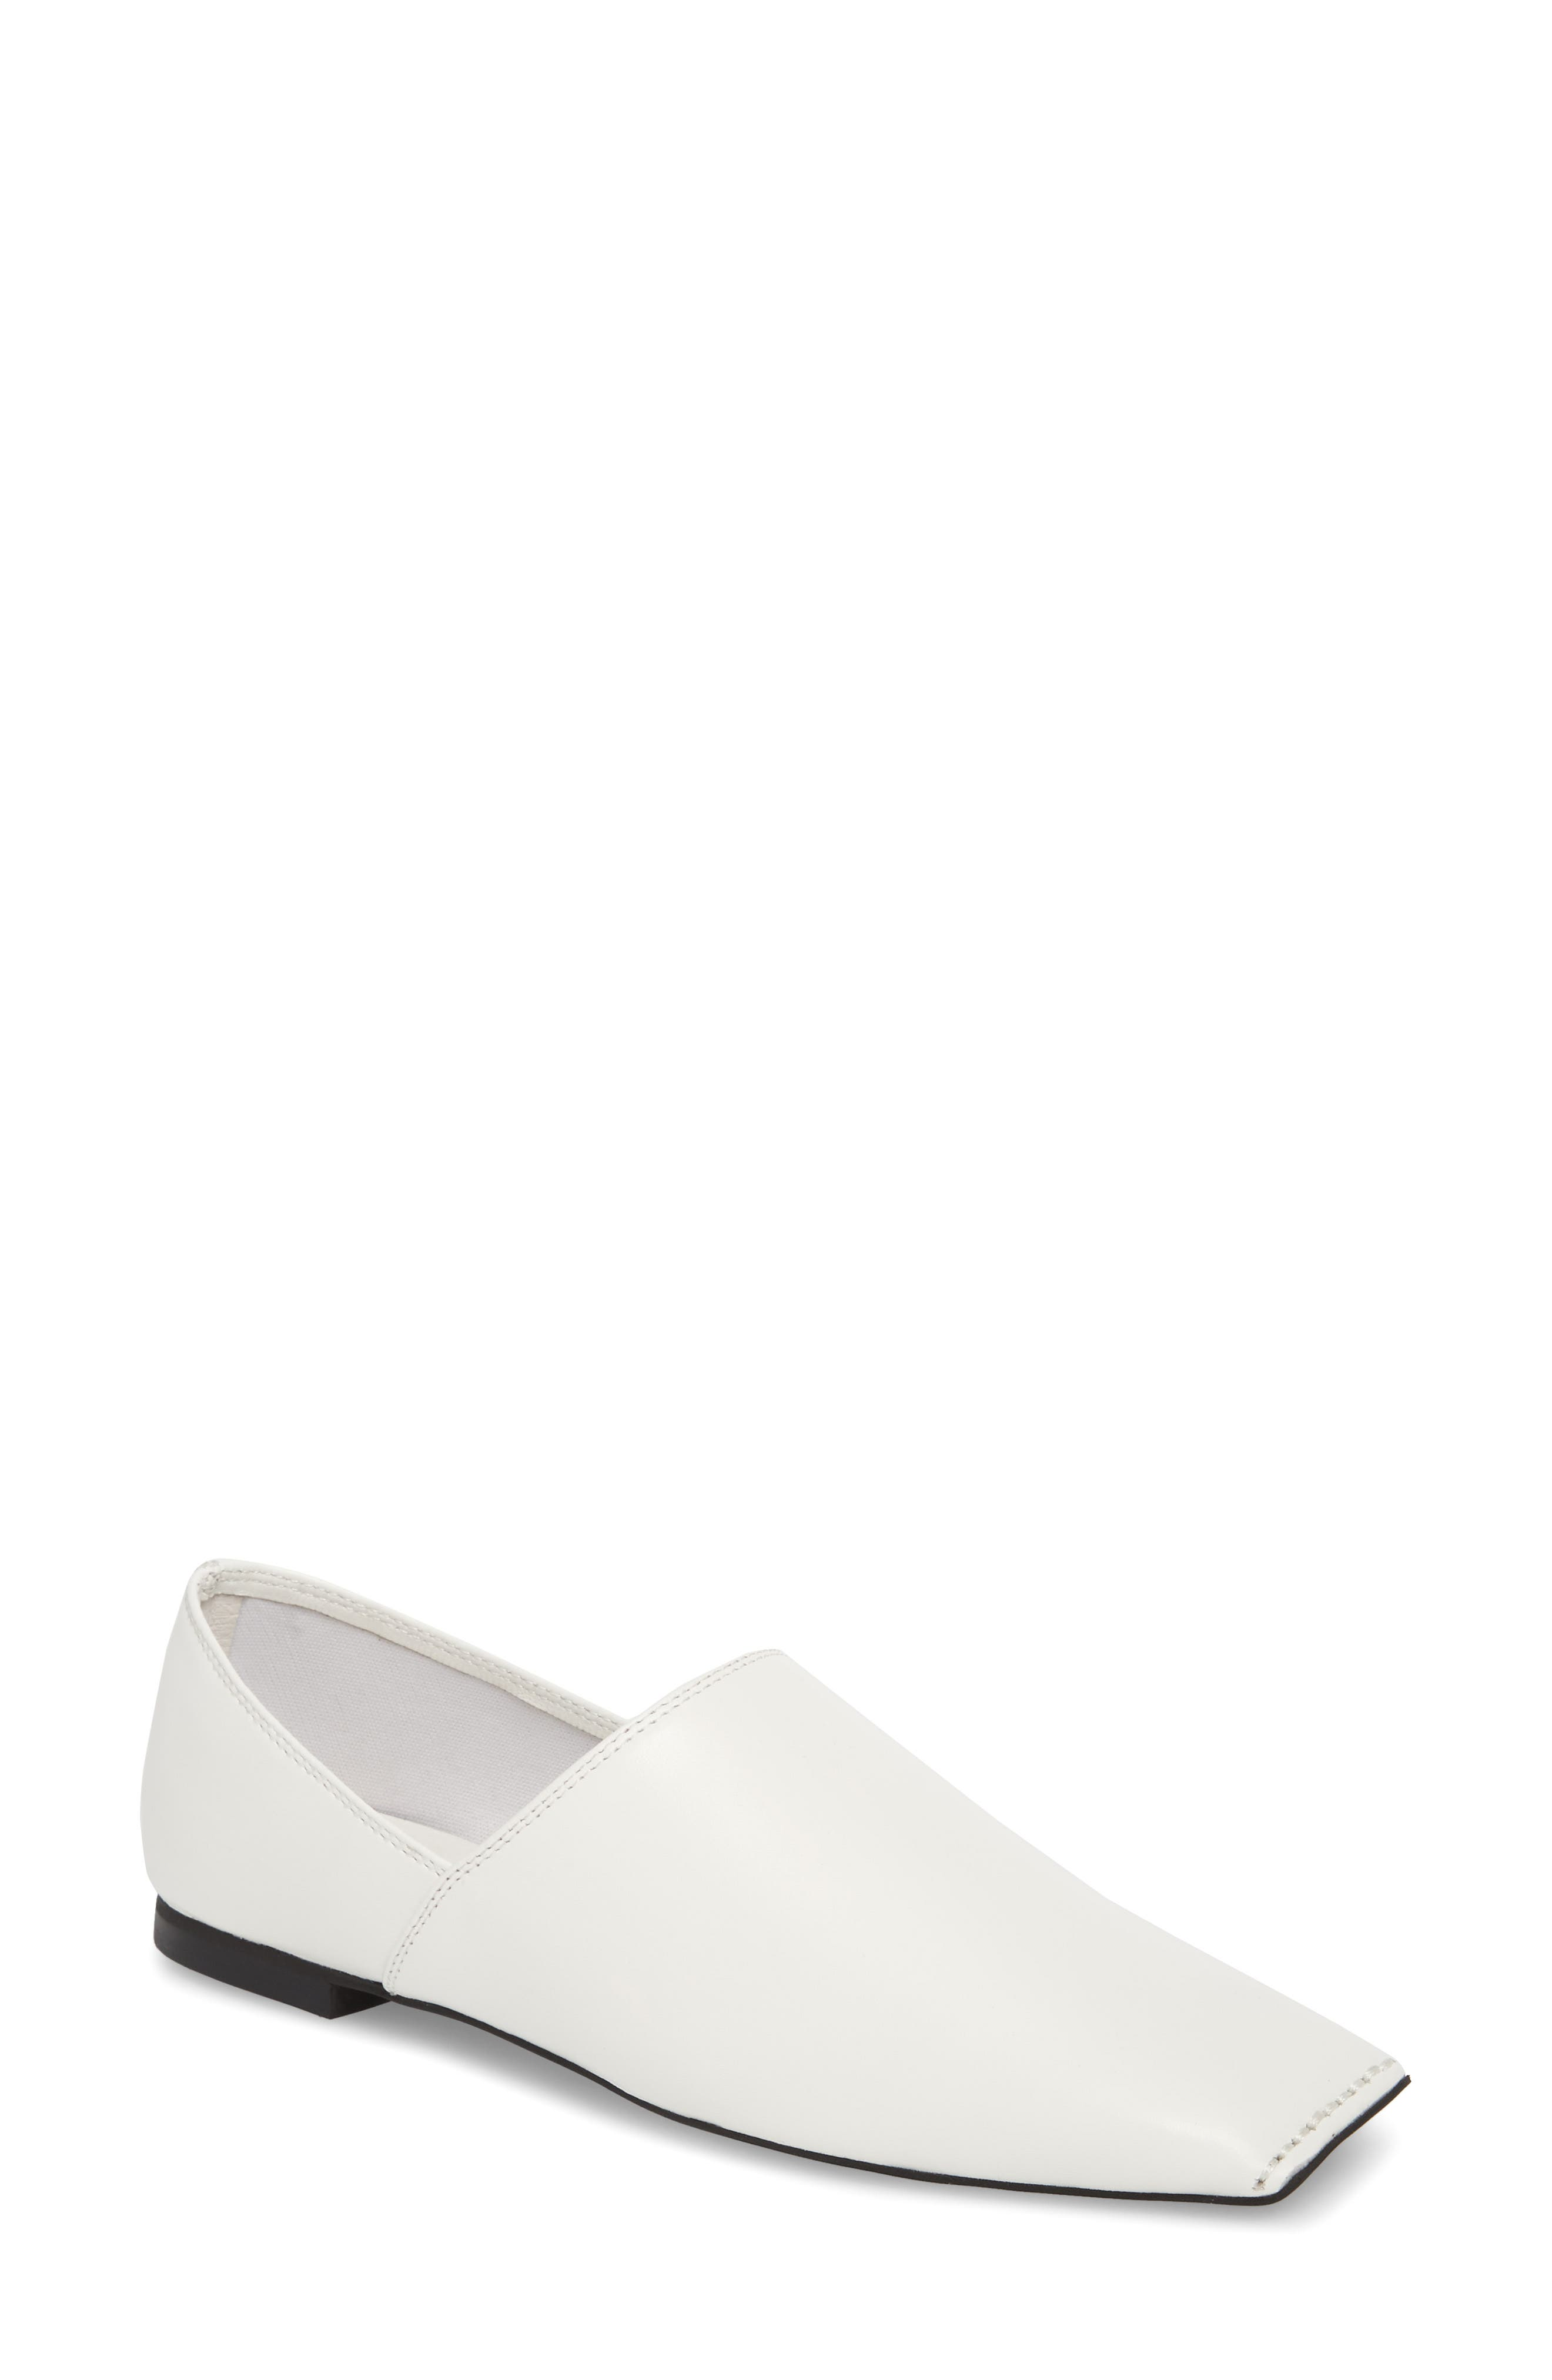 Lanvale Blunted Toe Flat,                         Main,                         color, White